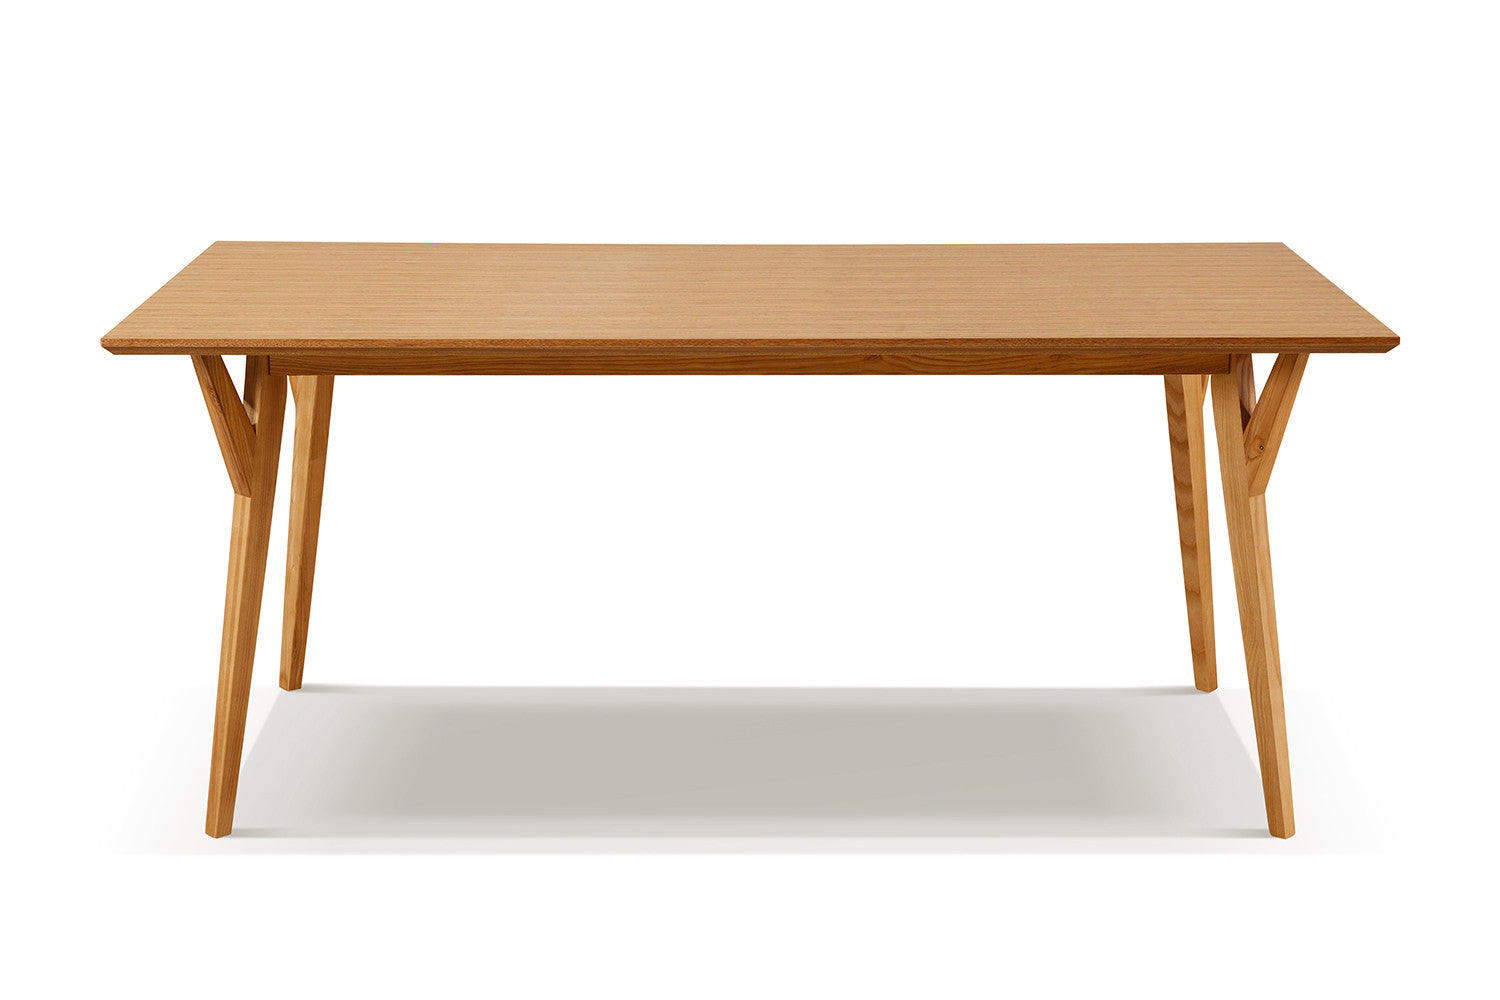 Table salle a manger scandinave for Table salle a manger triangulaire